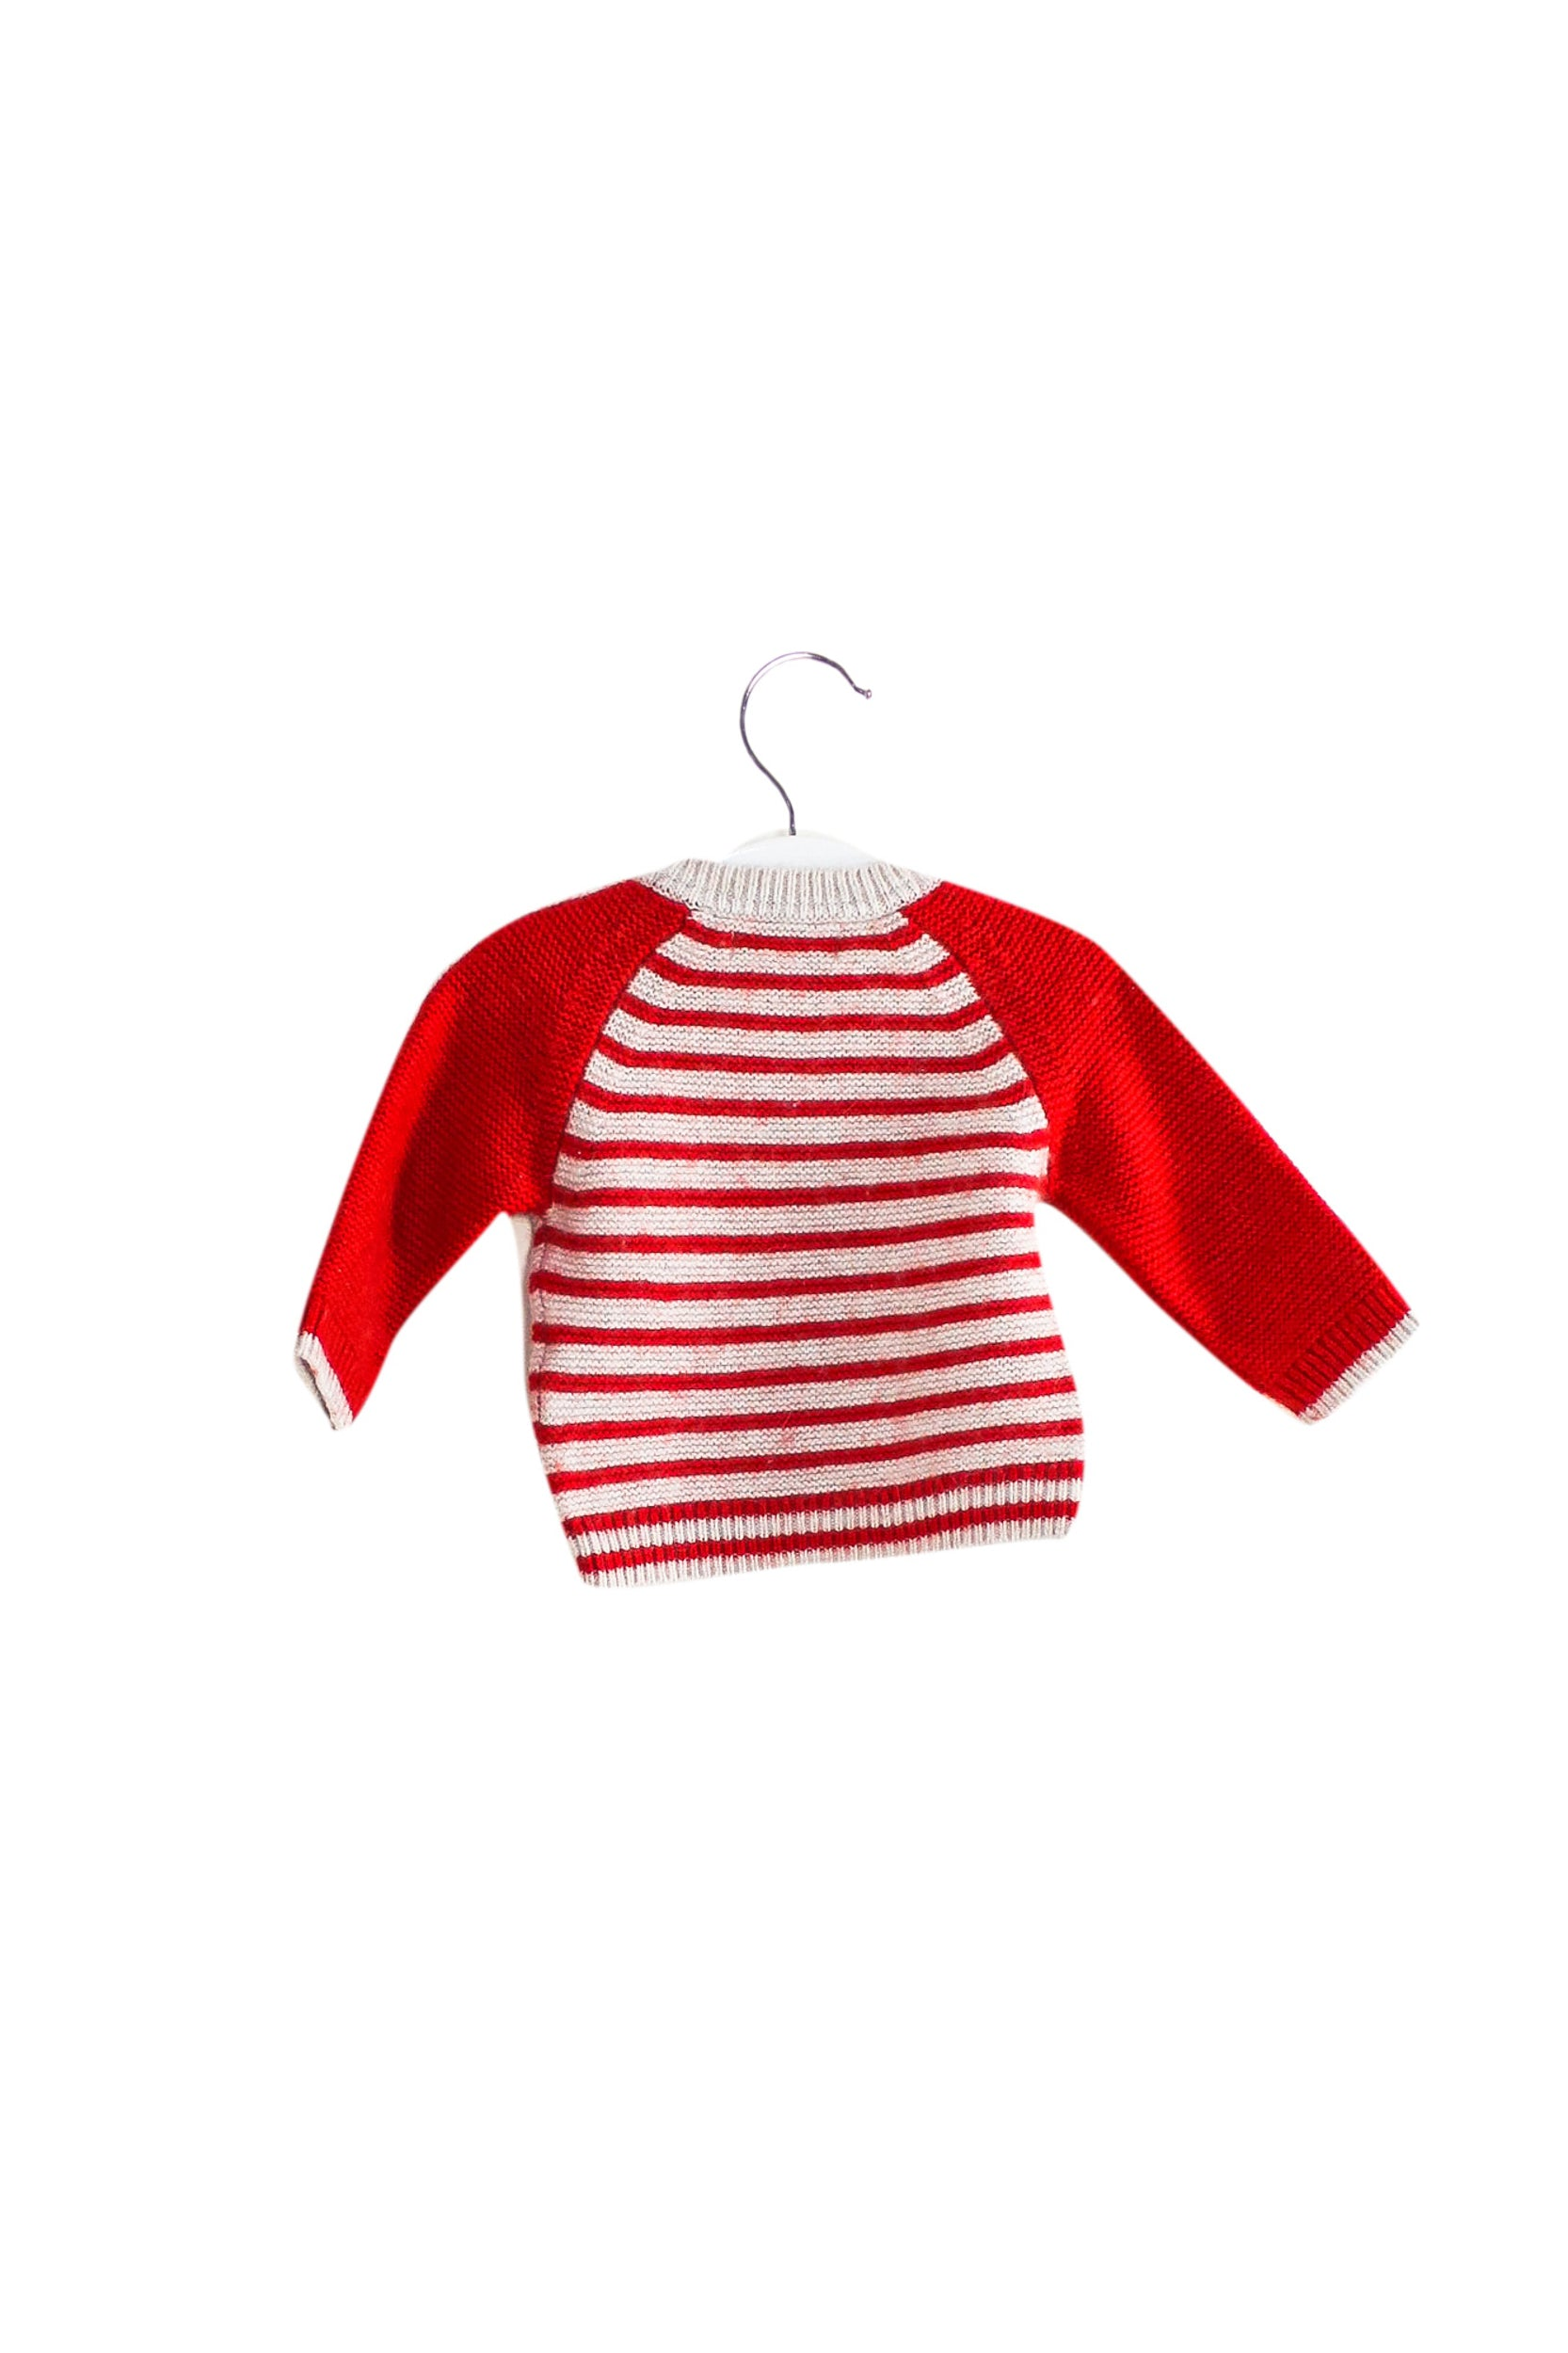 Boden Knit Sweater 0-3M